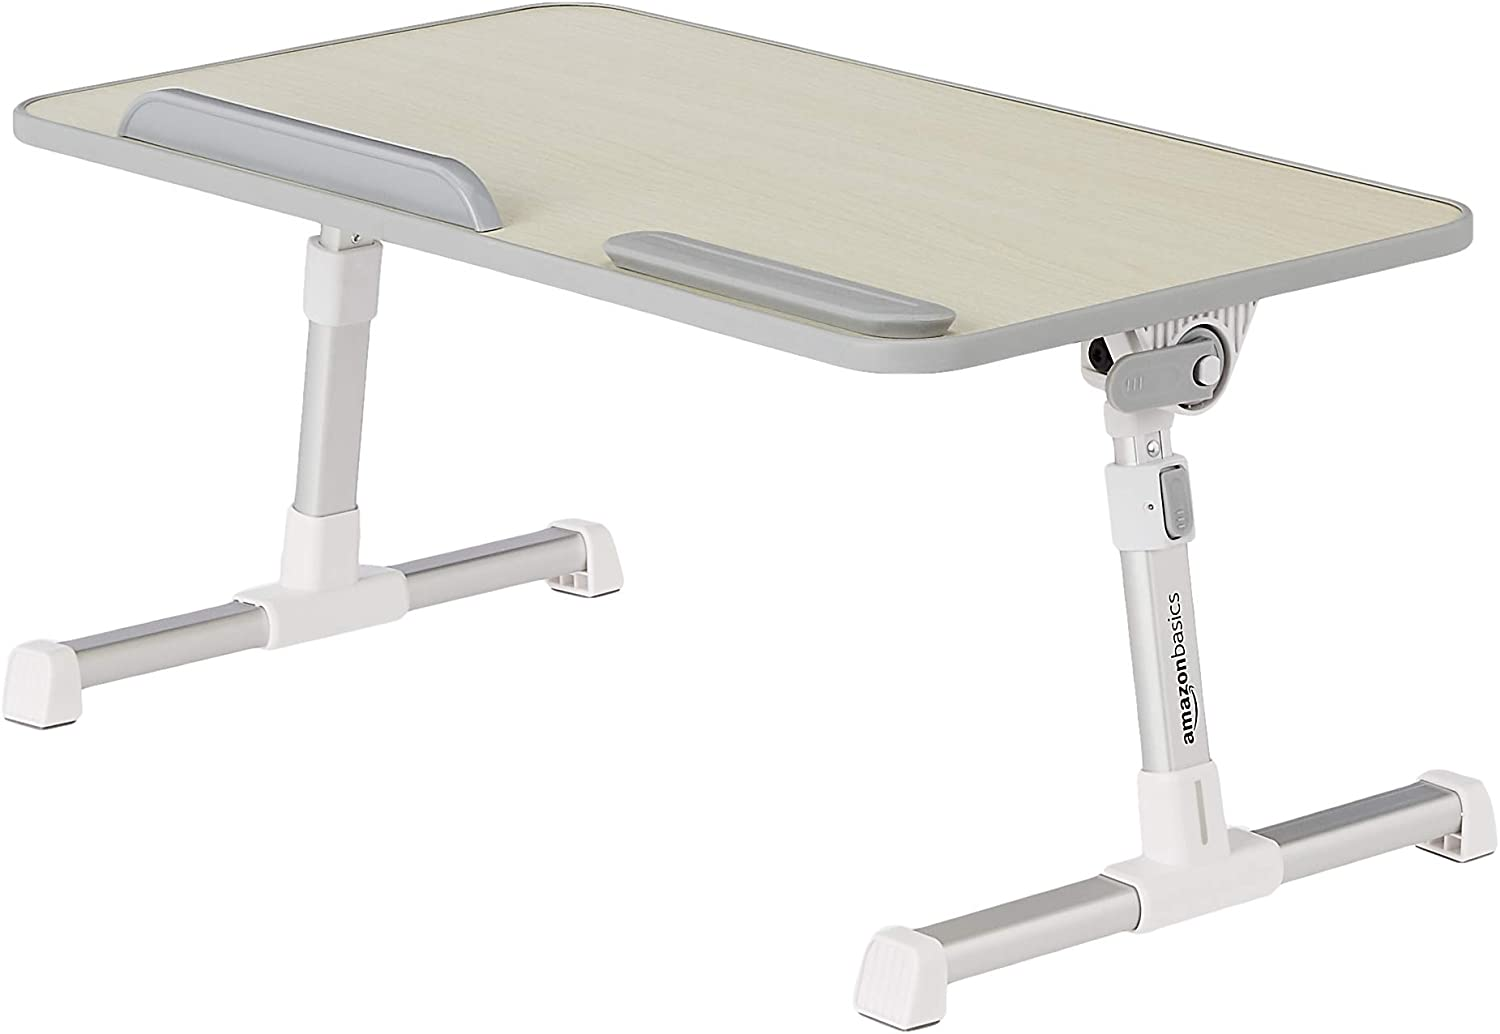 AmazonBasics Adjustable and Portable Laptop Table - Medium